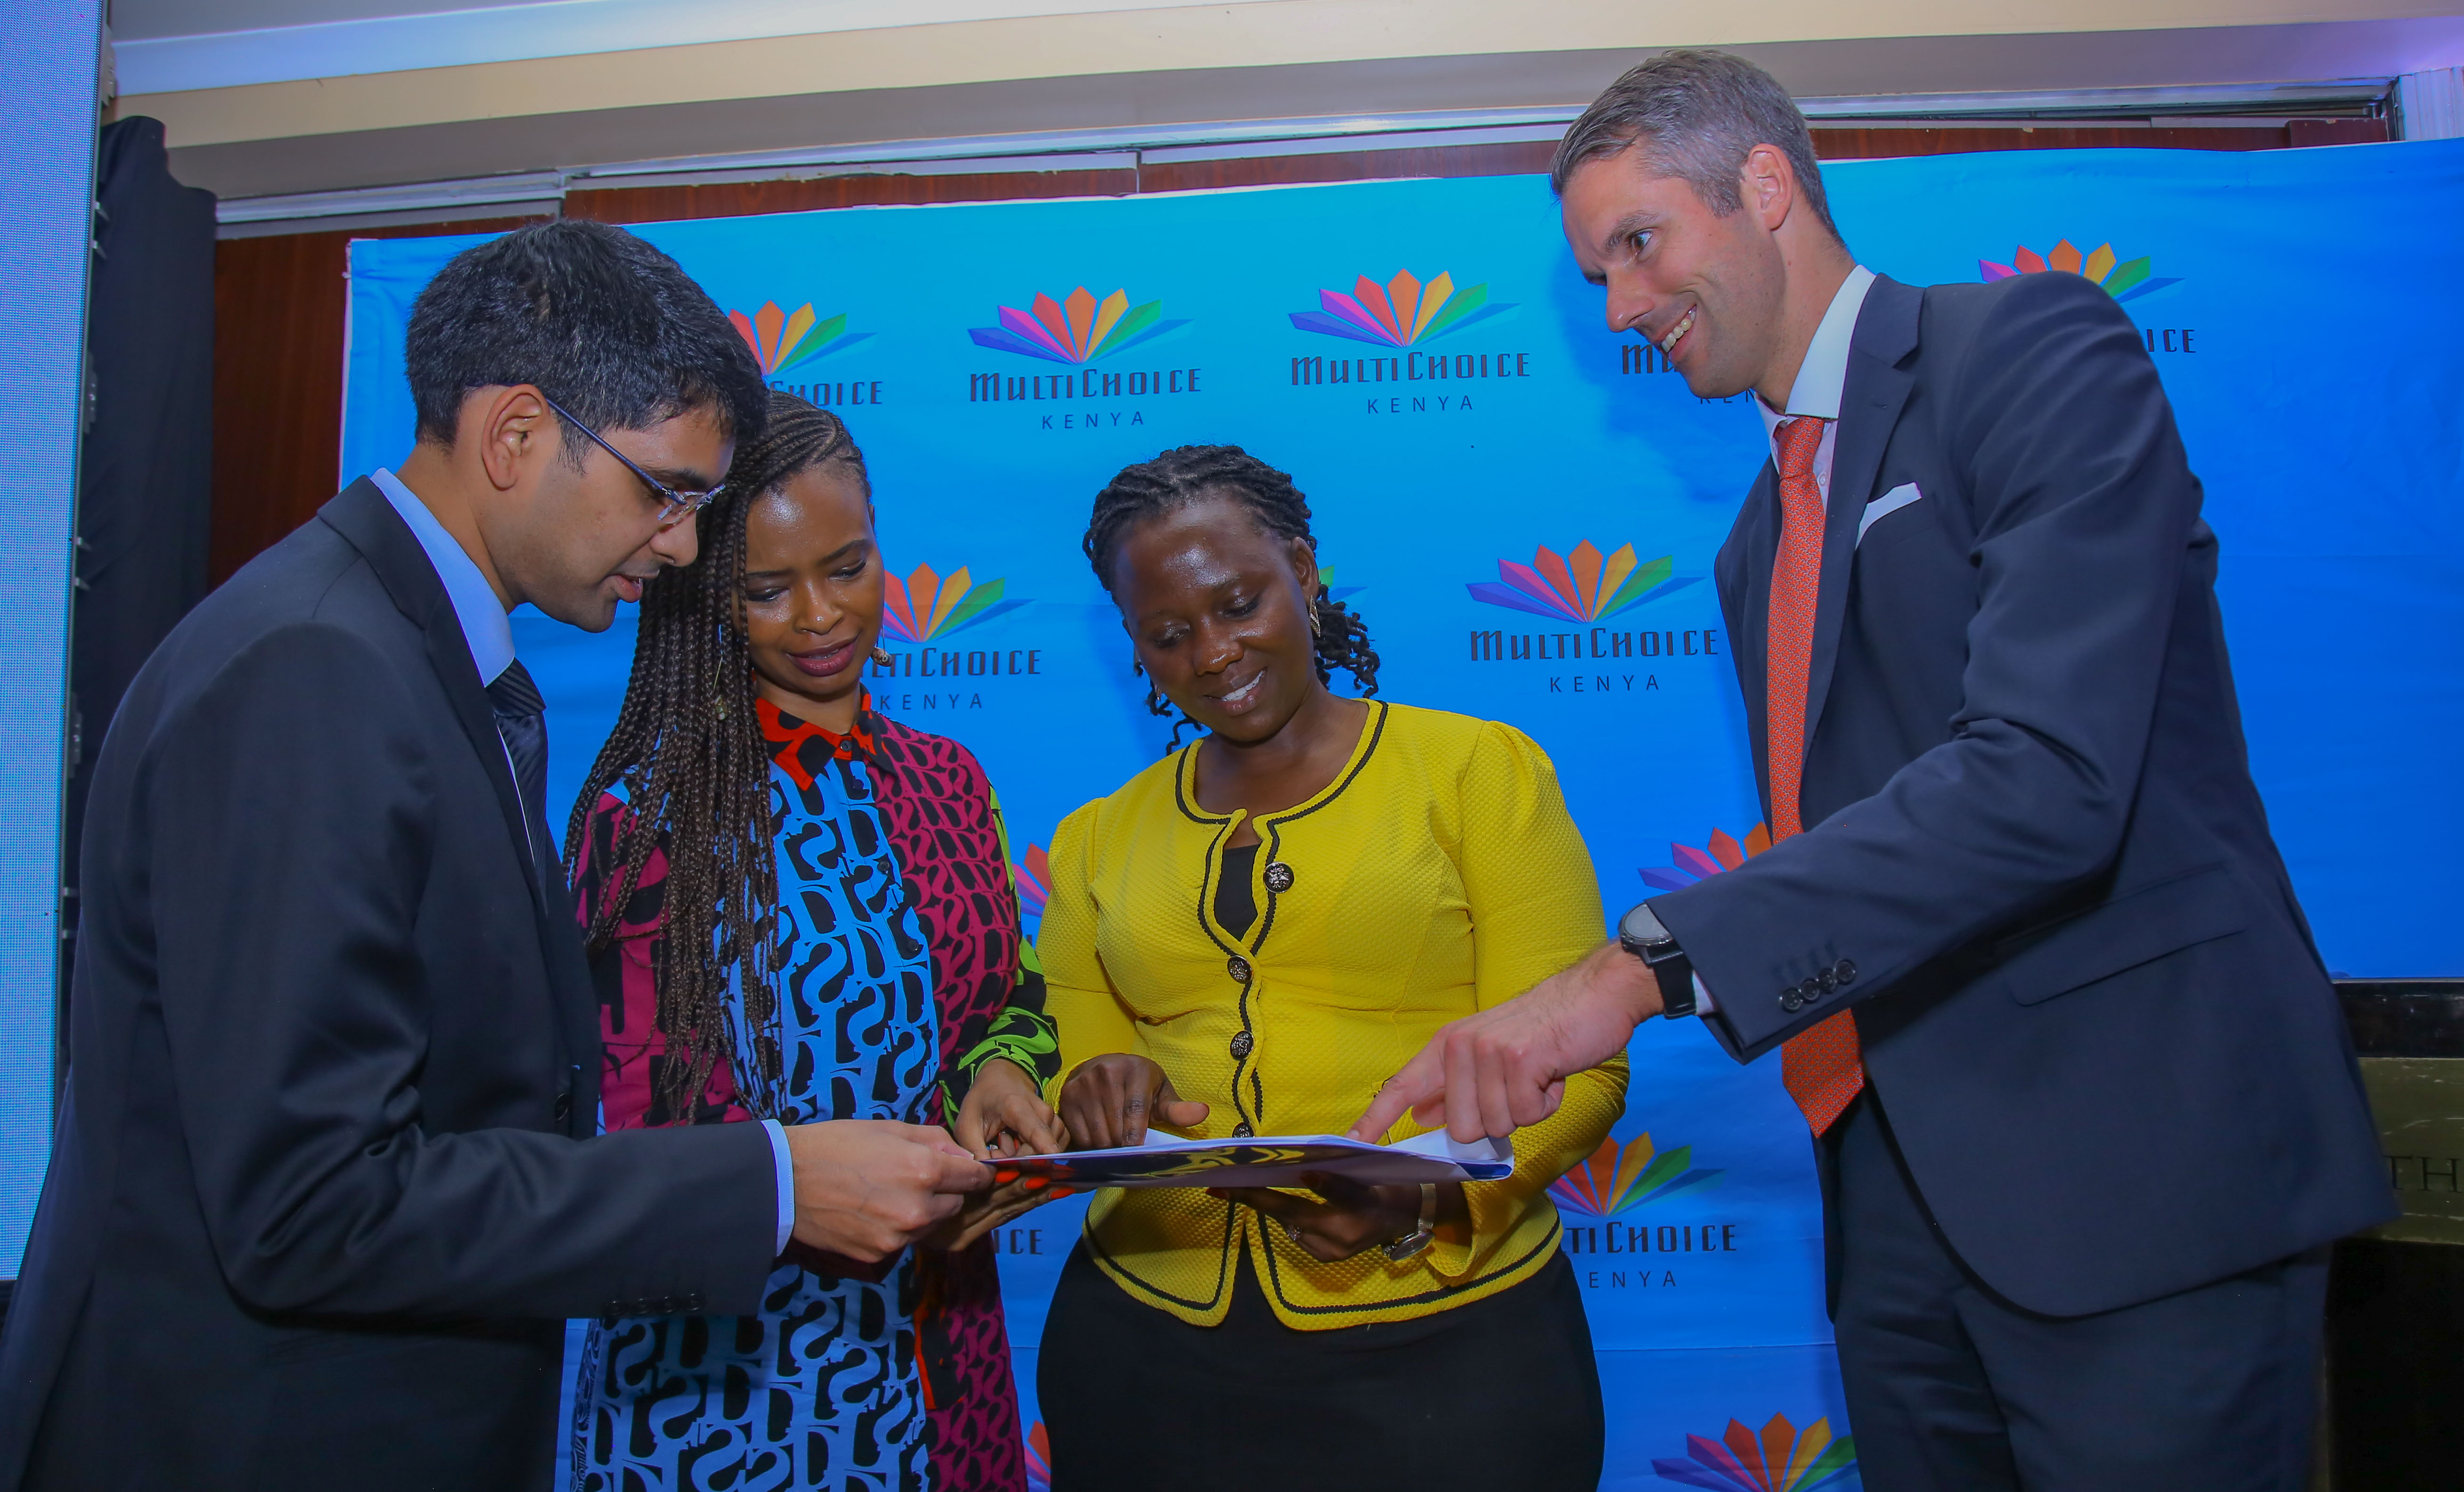 Vaibhav Rathi, Accenture Strategy Business Strategy Manager; Reatile Tekateka, MultiChoice Group Executive Head of Corporate Affairs; Ruth Omondi, Ag. Finance Manager MultiChoice Kenya and Wolfgang Popp, Accenture Strategy Principal Director at the launch of MultiChoice Kenya's socio-economic impact report on 24 October 2019. www.businesstoday.co.ke